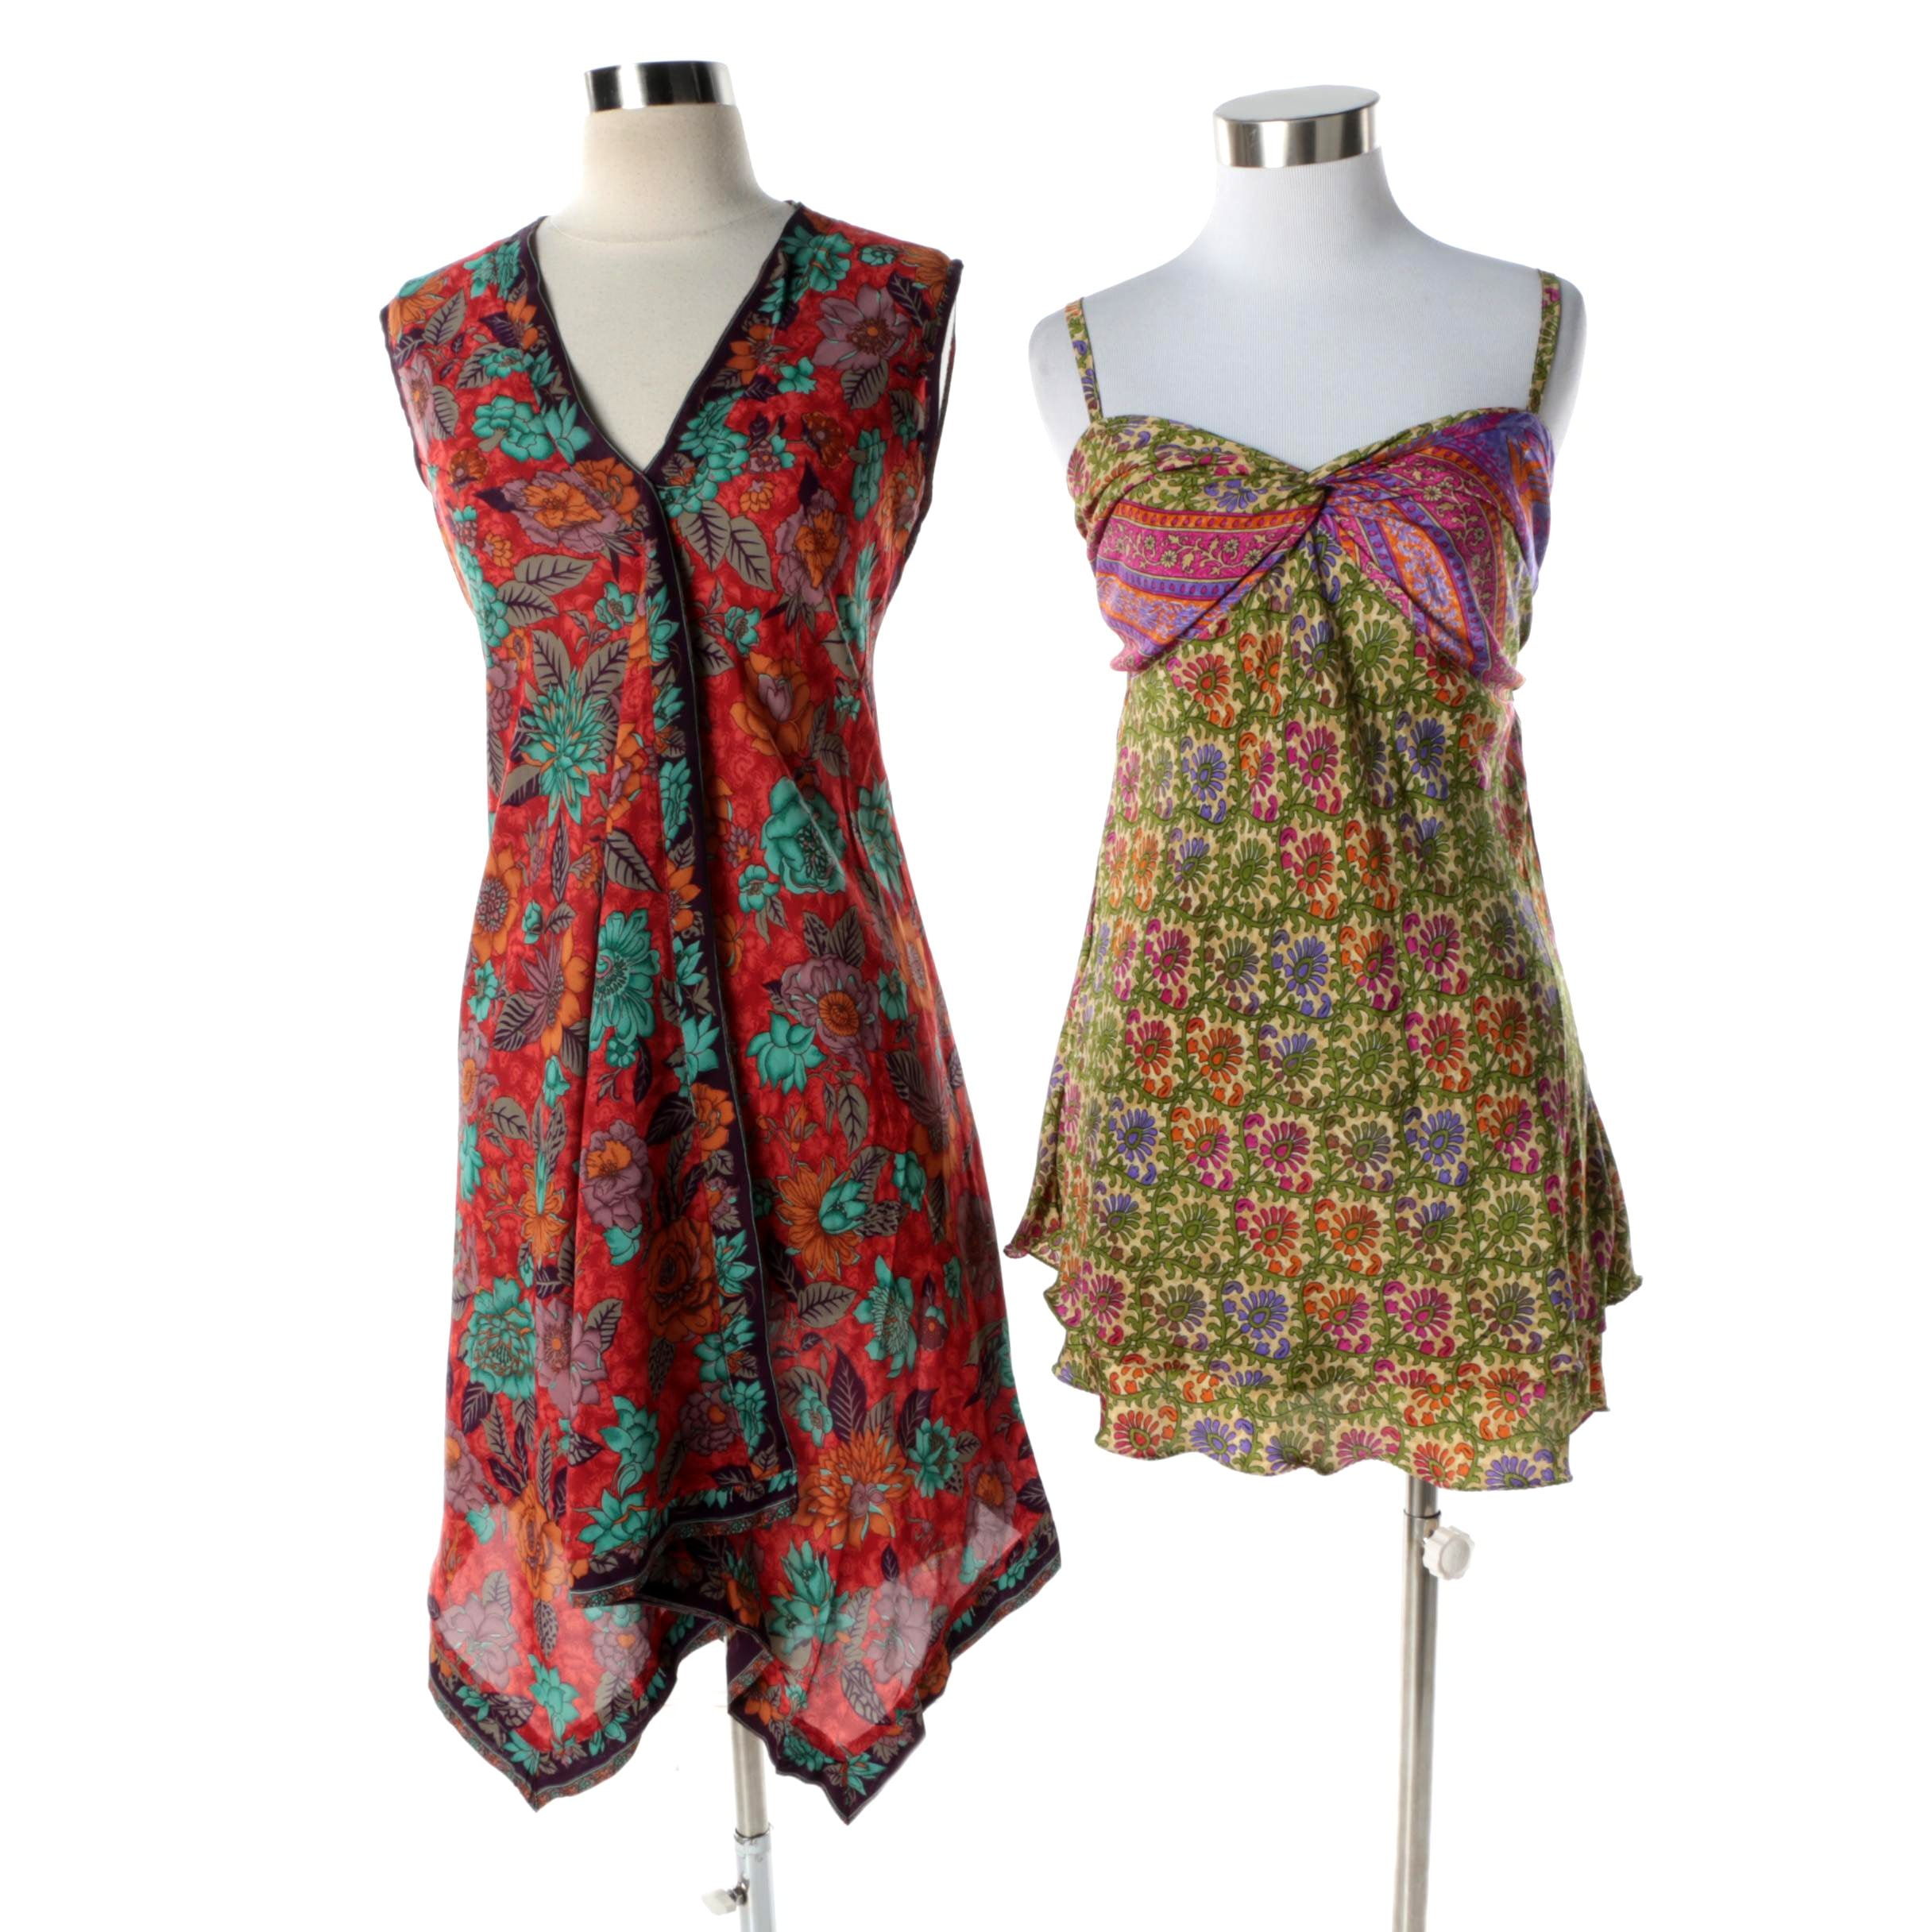 Aller Simplement Sleeveless Dress and Top Made From Upcycled Vintage Saris